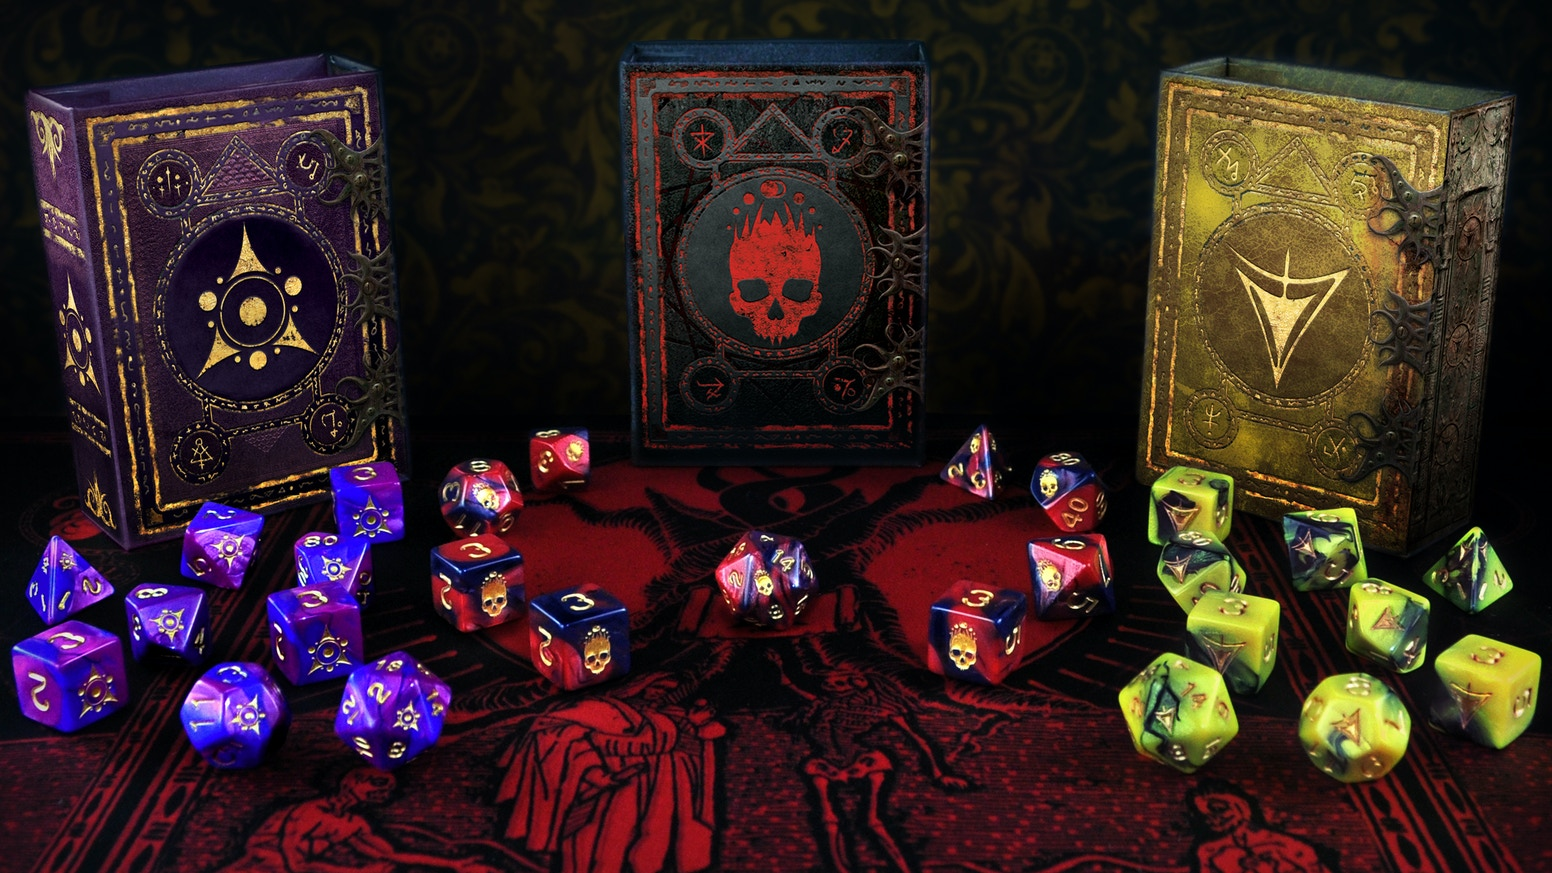 Lovecraftian designs: Yellow Sign of Hastur, Sigil of the Dreamlands, and Mark of the Necronomicon. Includes magnetic spell book box.